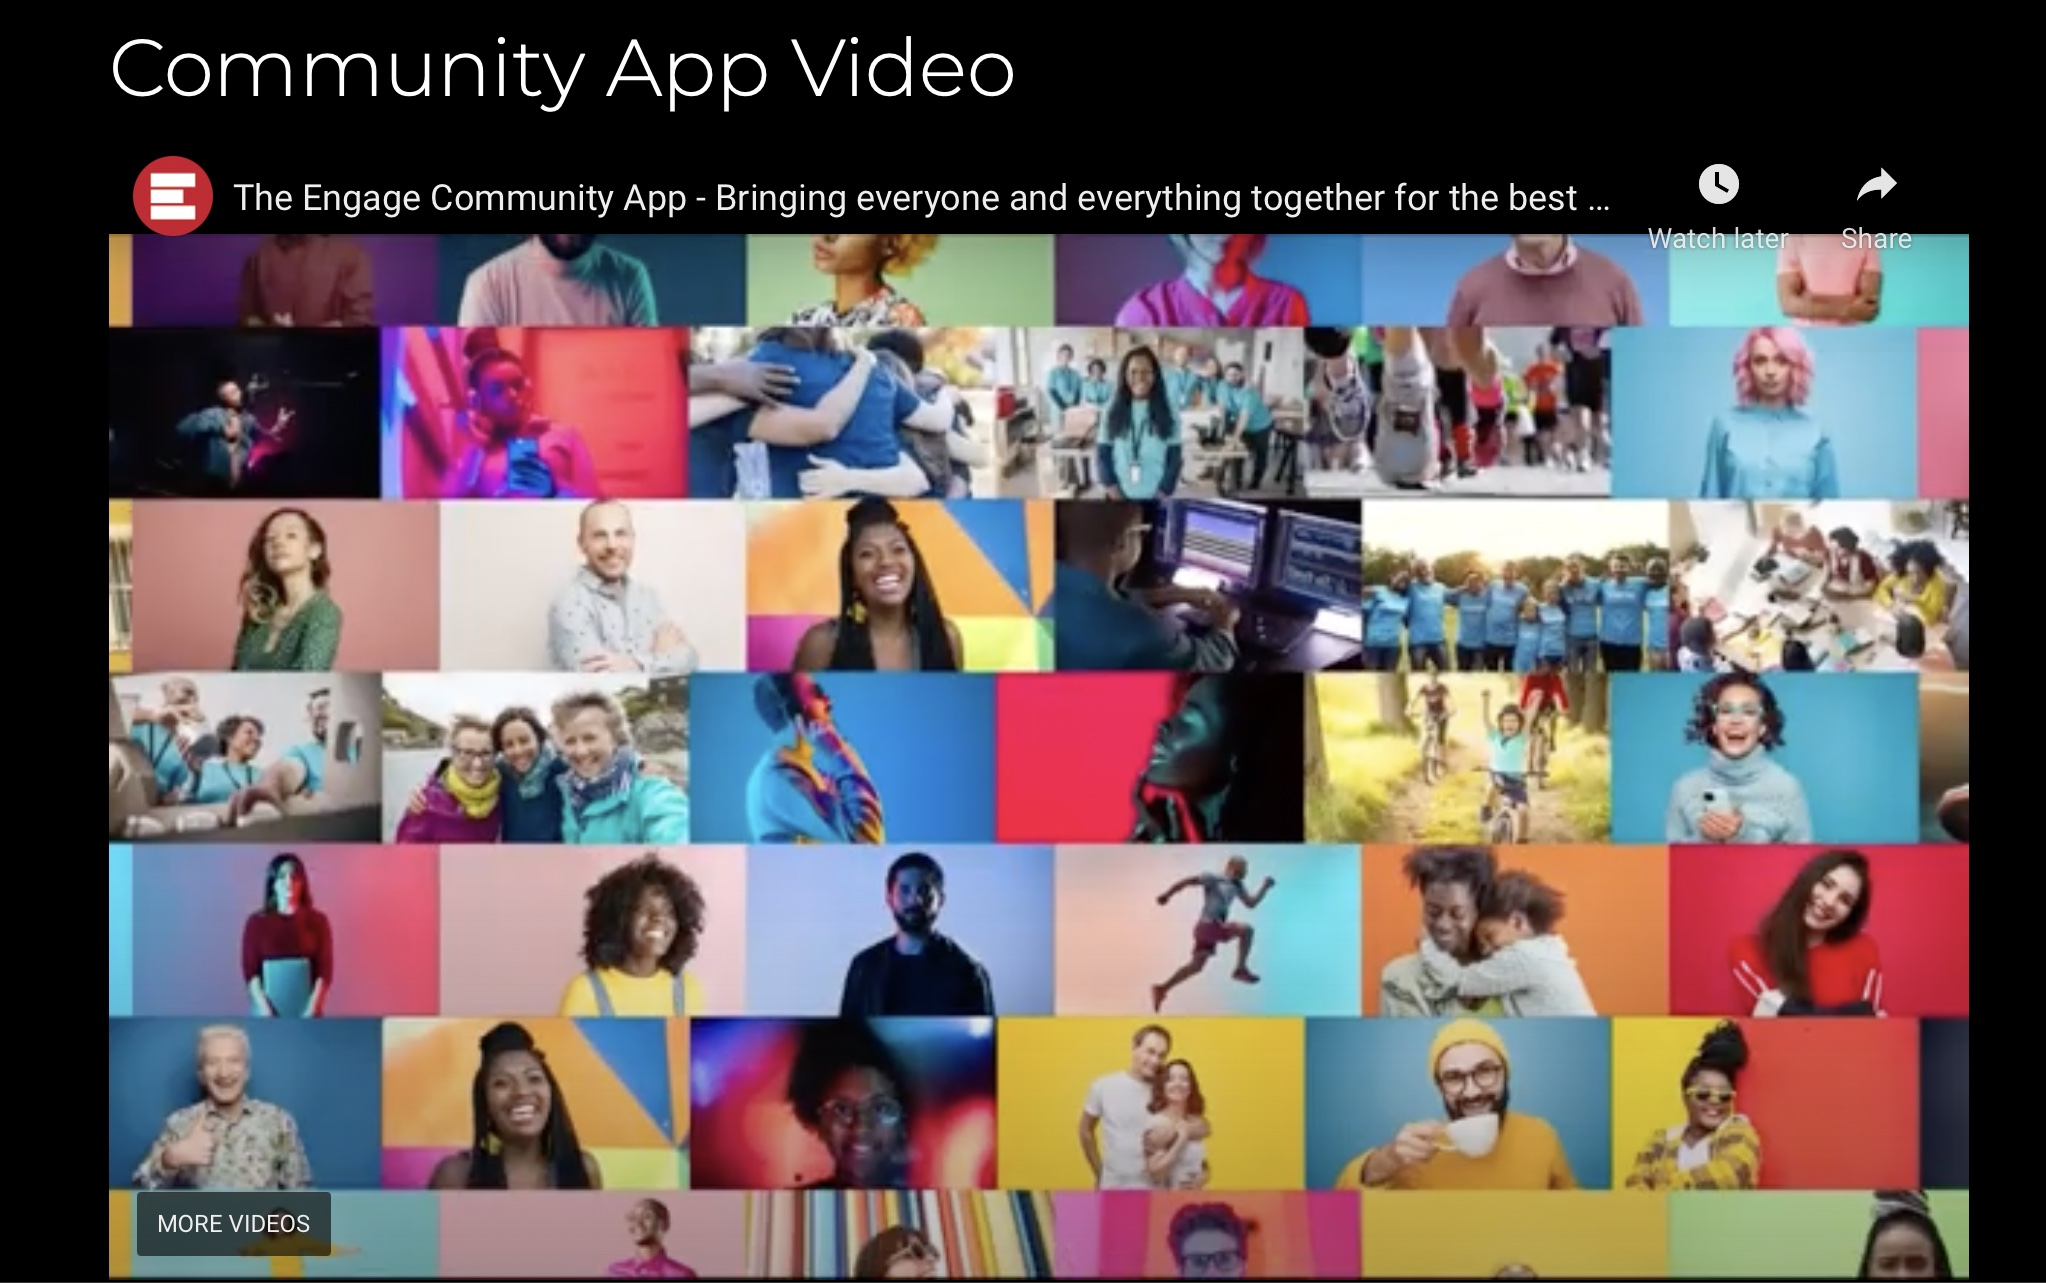 First look: Taking community engagement to the next level